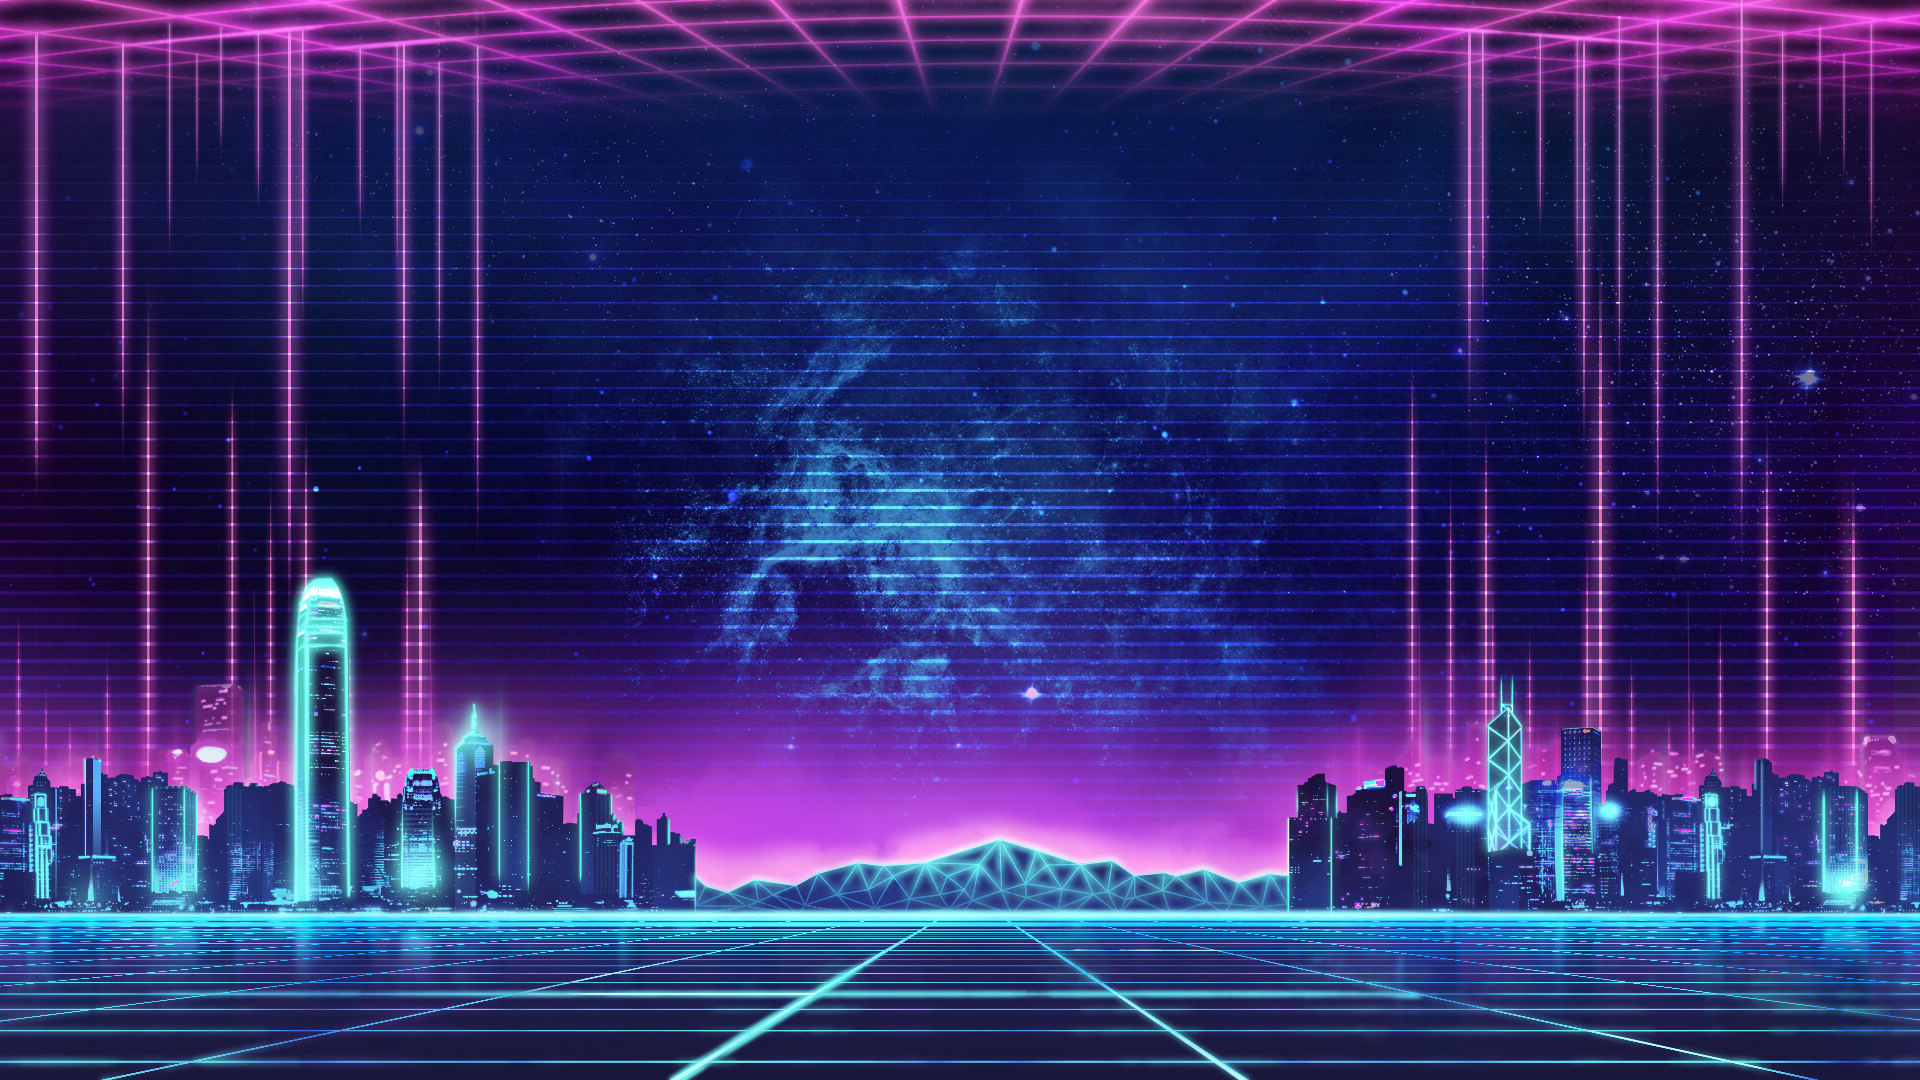 Classic Retrowave Skyline 1920 X 1080 Neon Wallpaper City Wallpaper Retro Waves